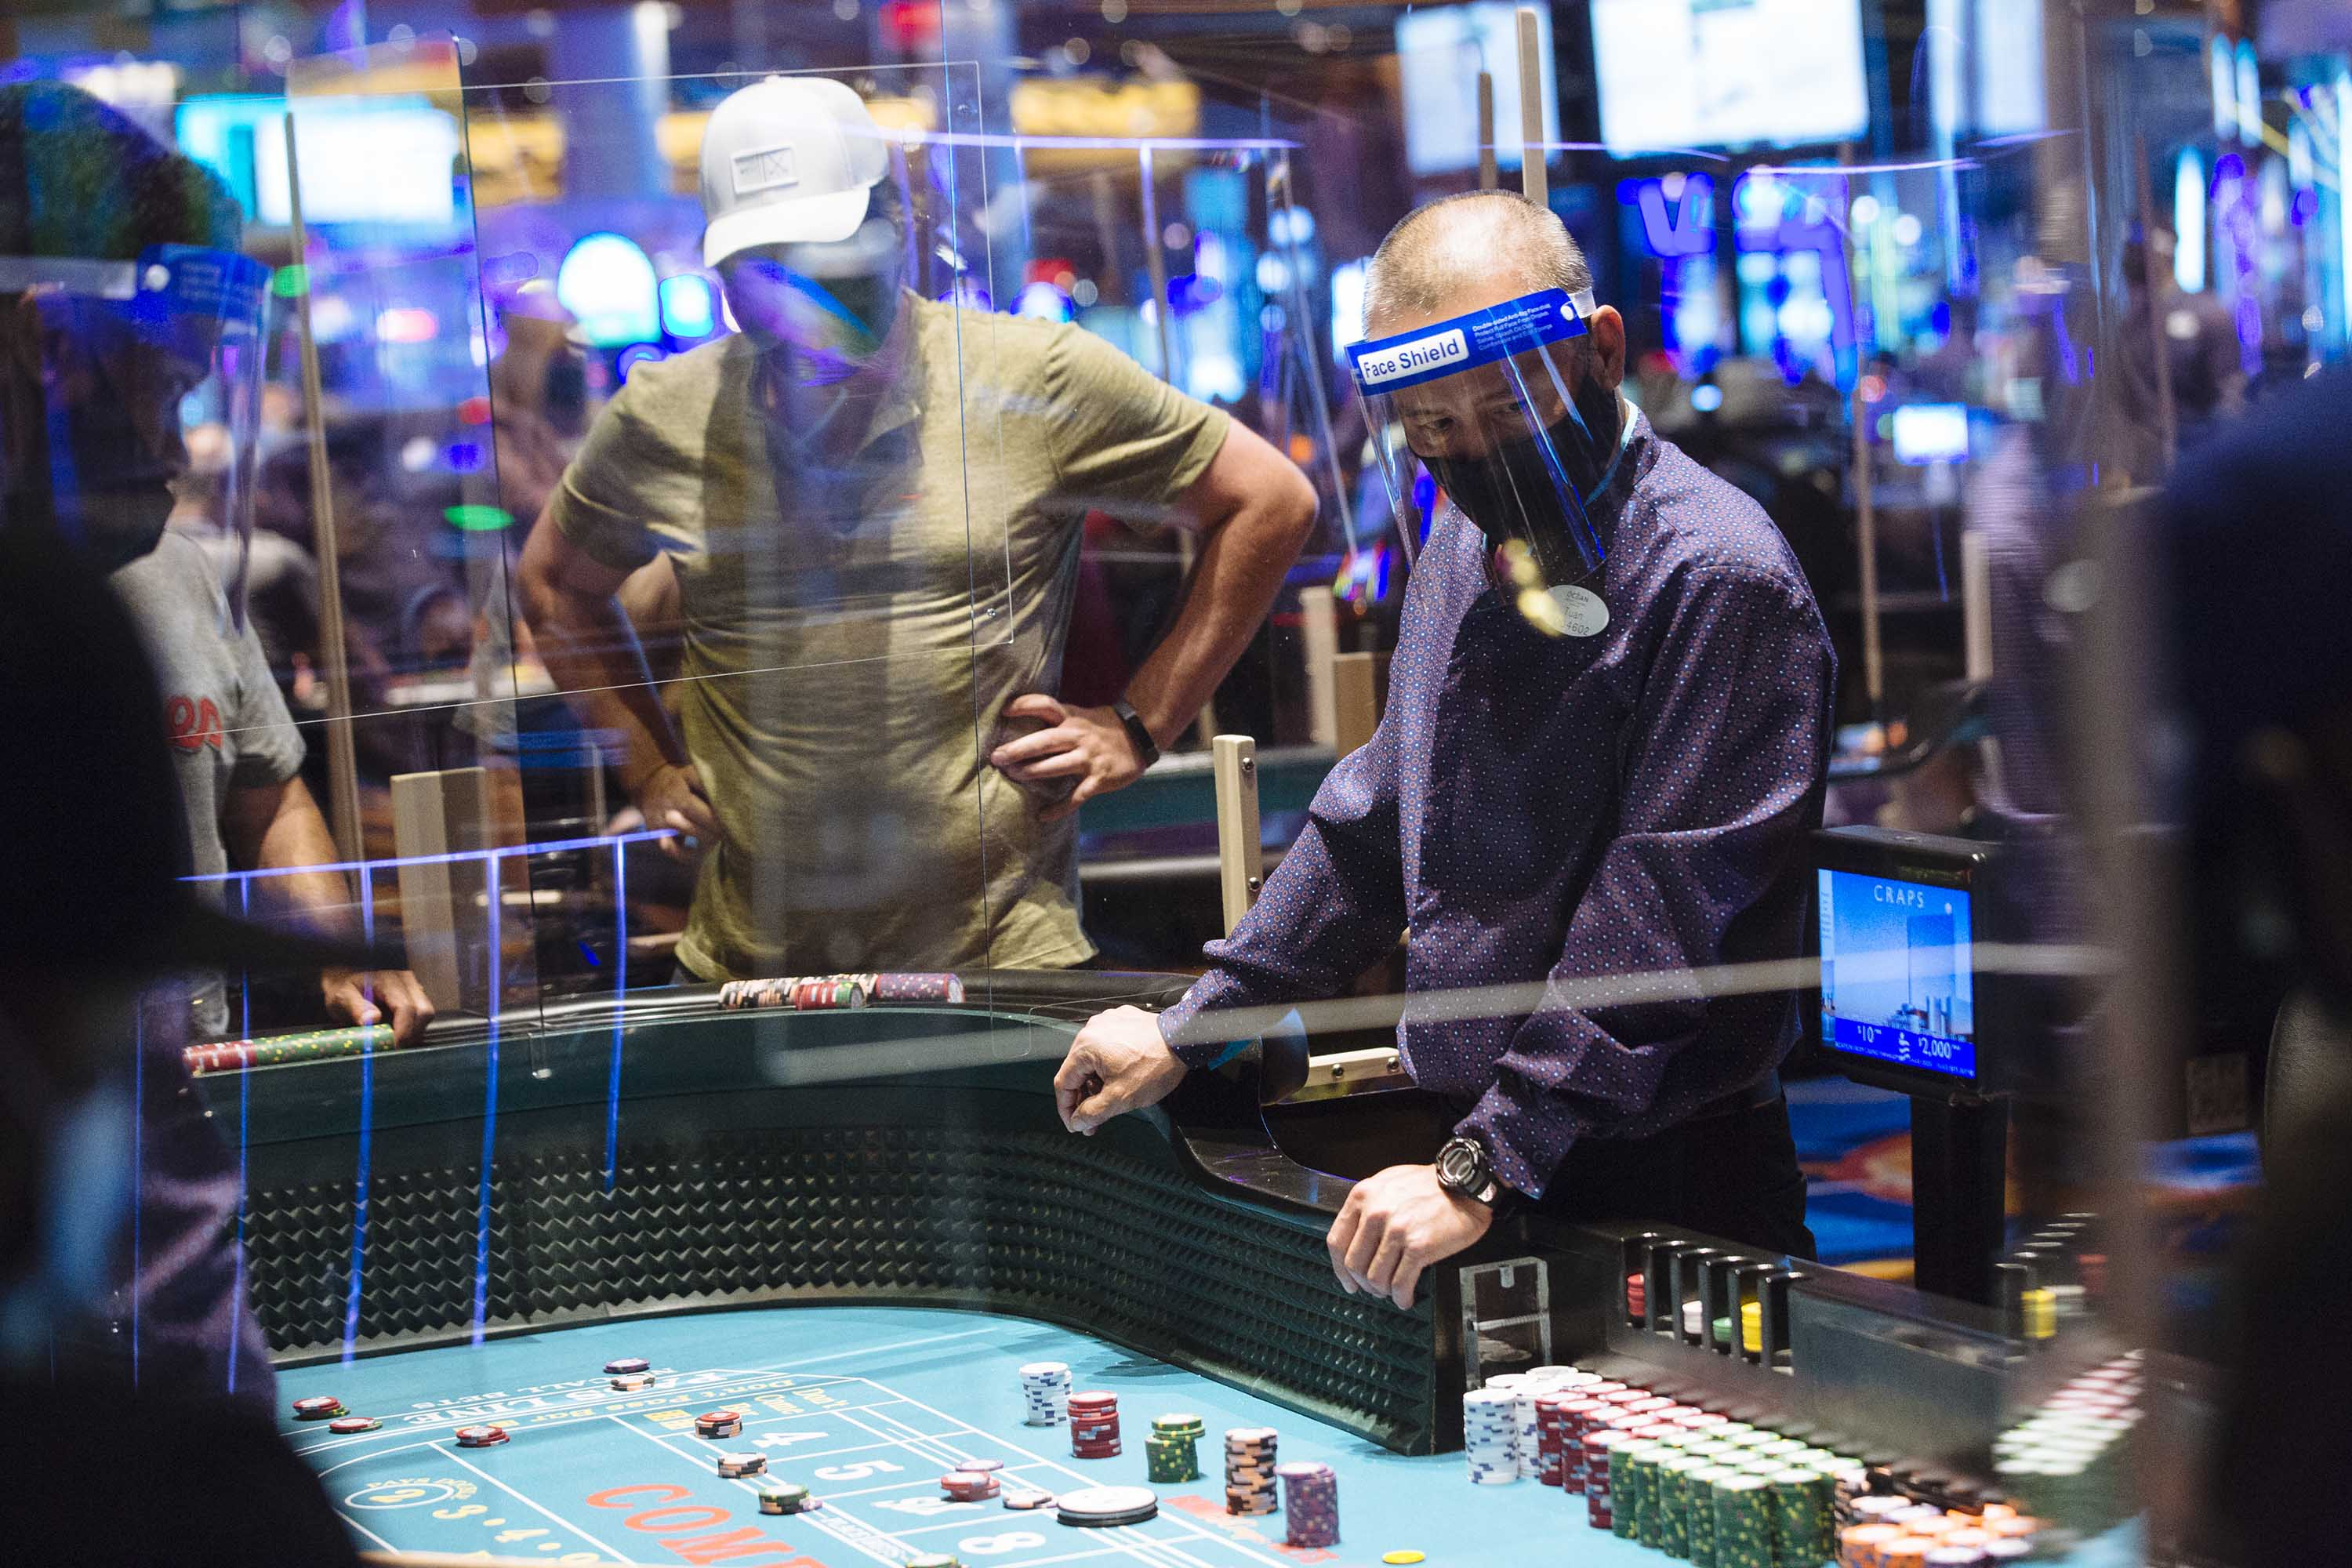 An employee wears a protective mask and face shield while overseeing the craps table at the Ocean Casino Resort in Atlantic City, New Jersey, in July 2020.